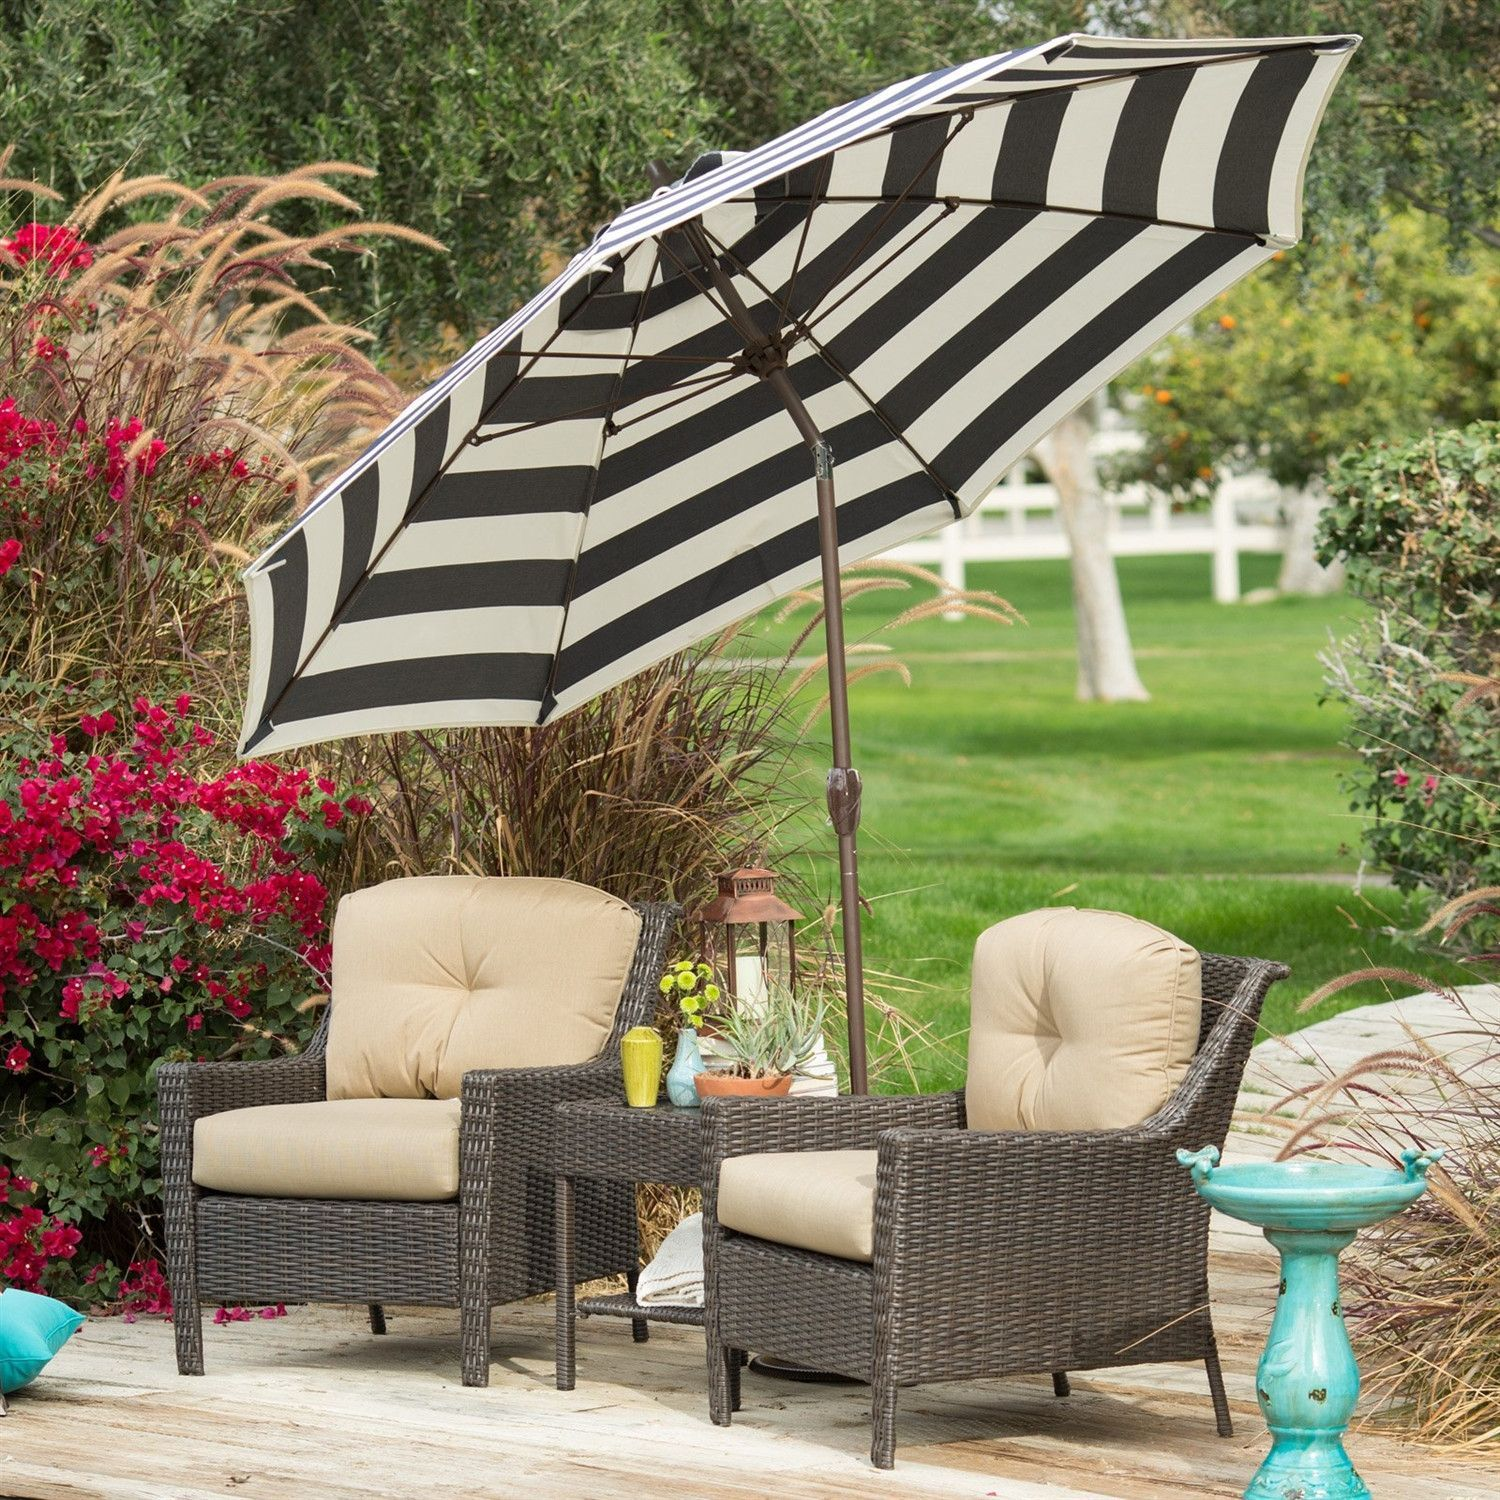 7.5 Ft Patio Umbrella With Dark Navy And White Stripe Outdoor Fabric Canopy  And Metal Pole